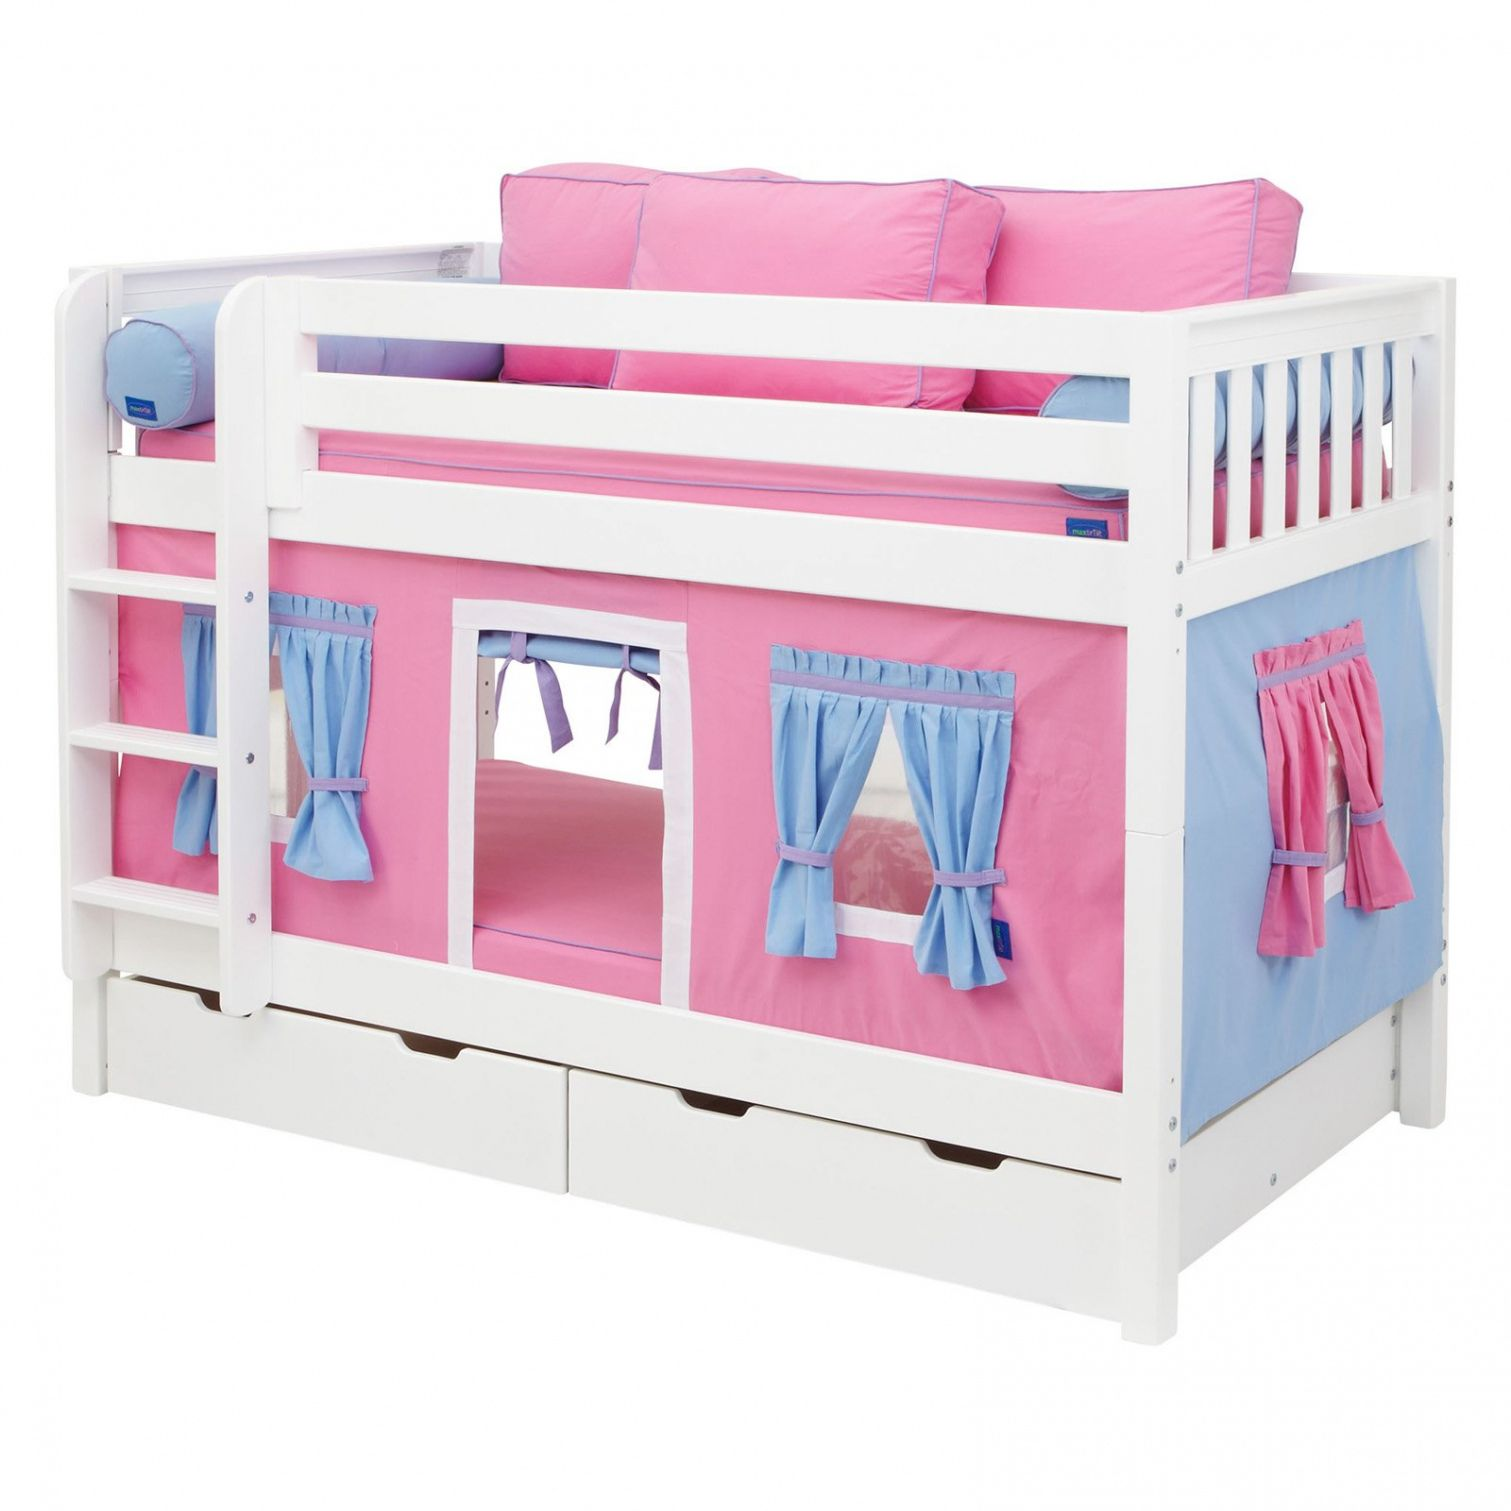 Bunk Beds for toddler Girls Interior Paint Color Schemes Check